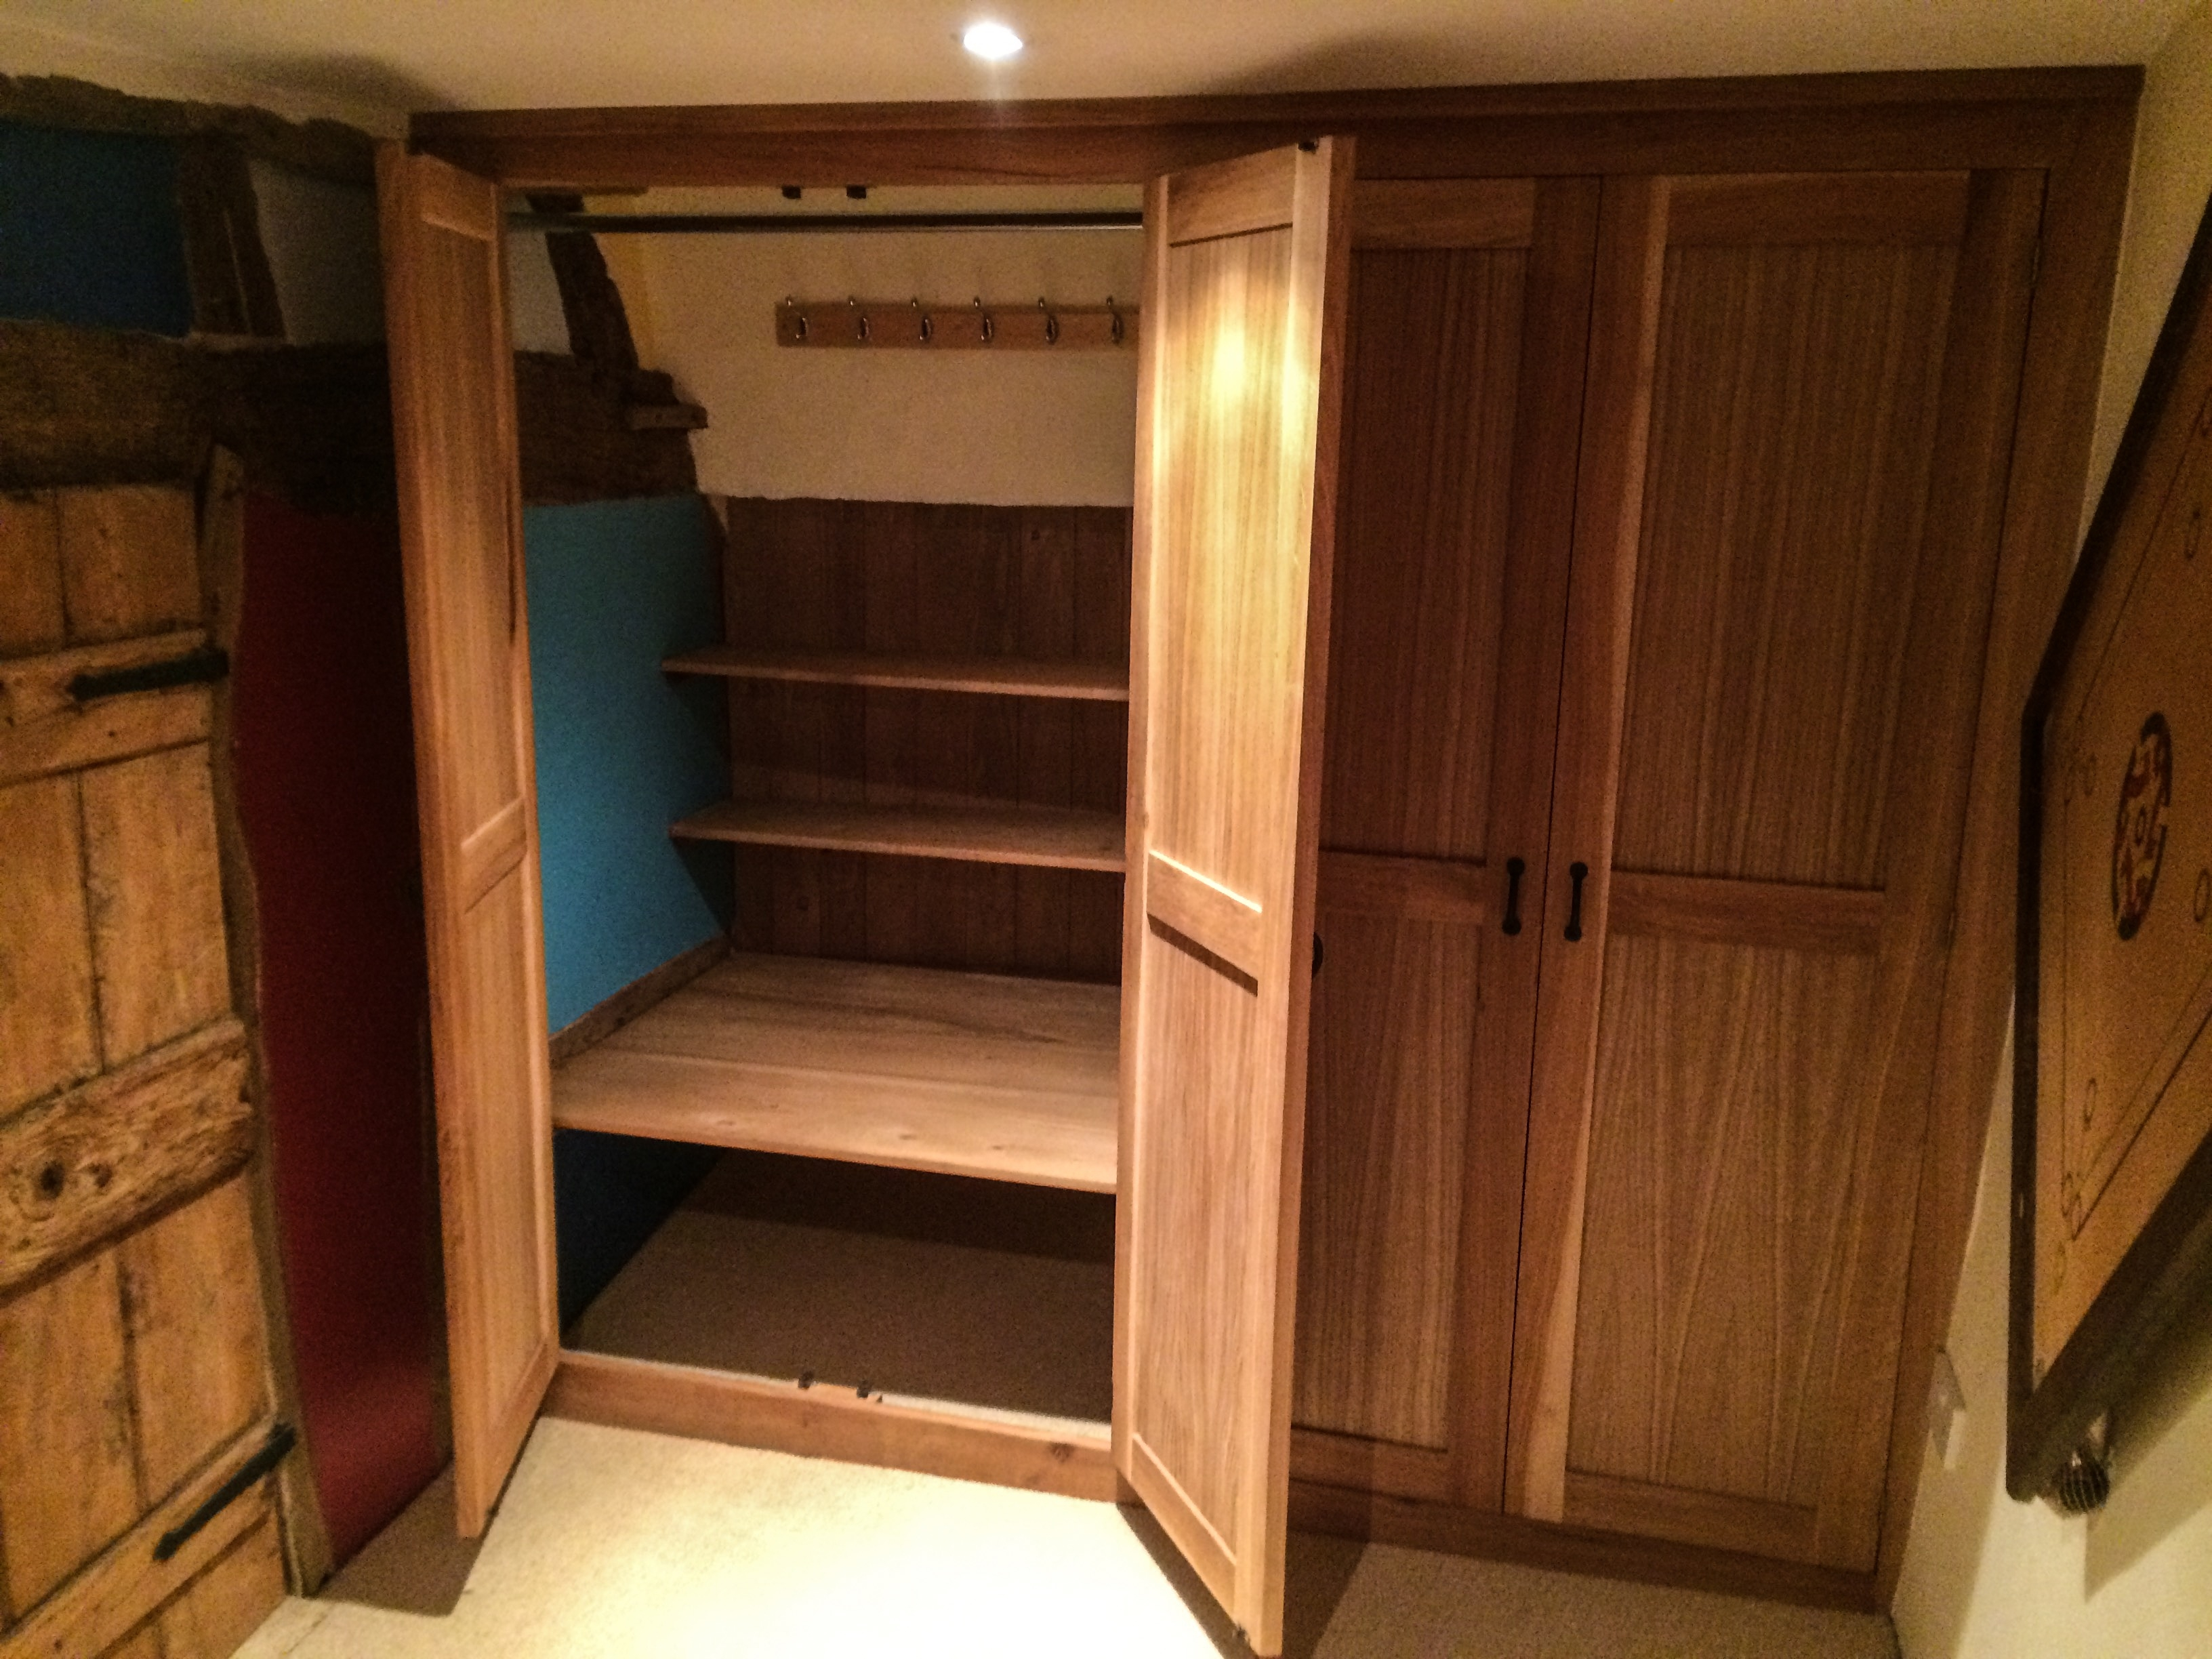 16 Best Fitted Bedroom Furniture Images On Pinterest Regarding Fitted Wooden Wardrobes (#1 of 15)